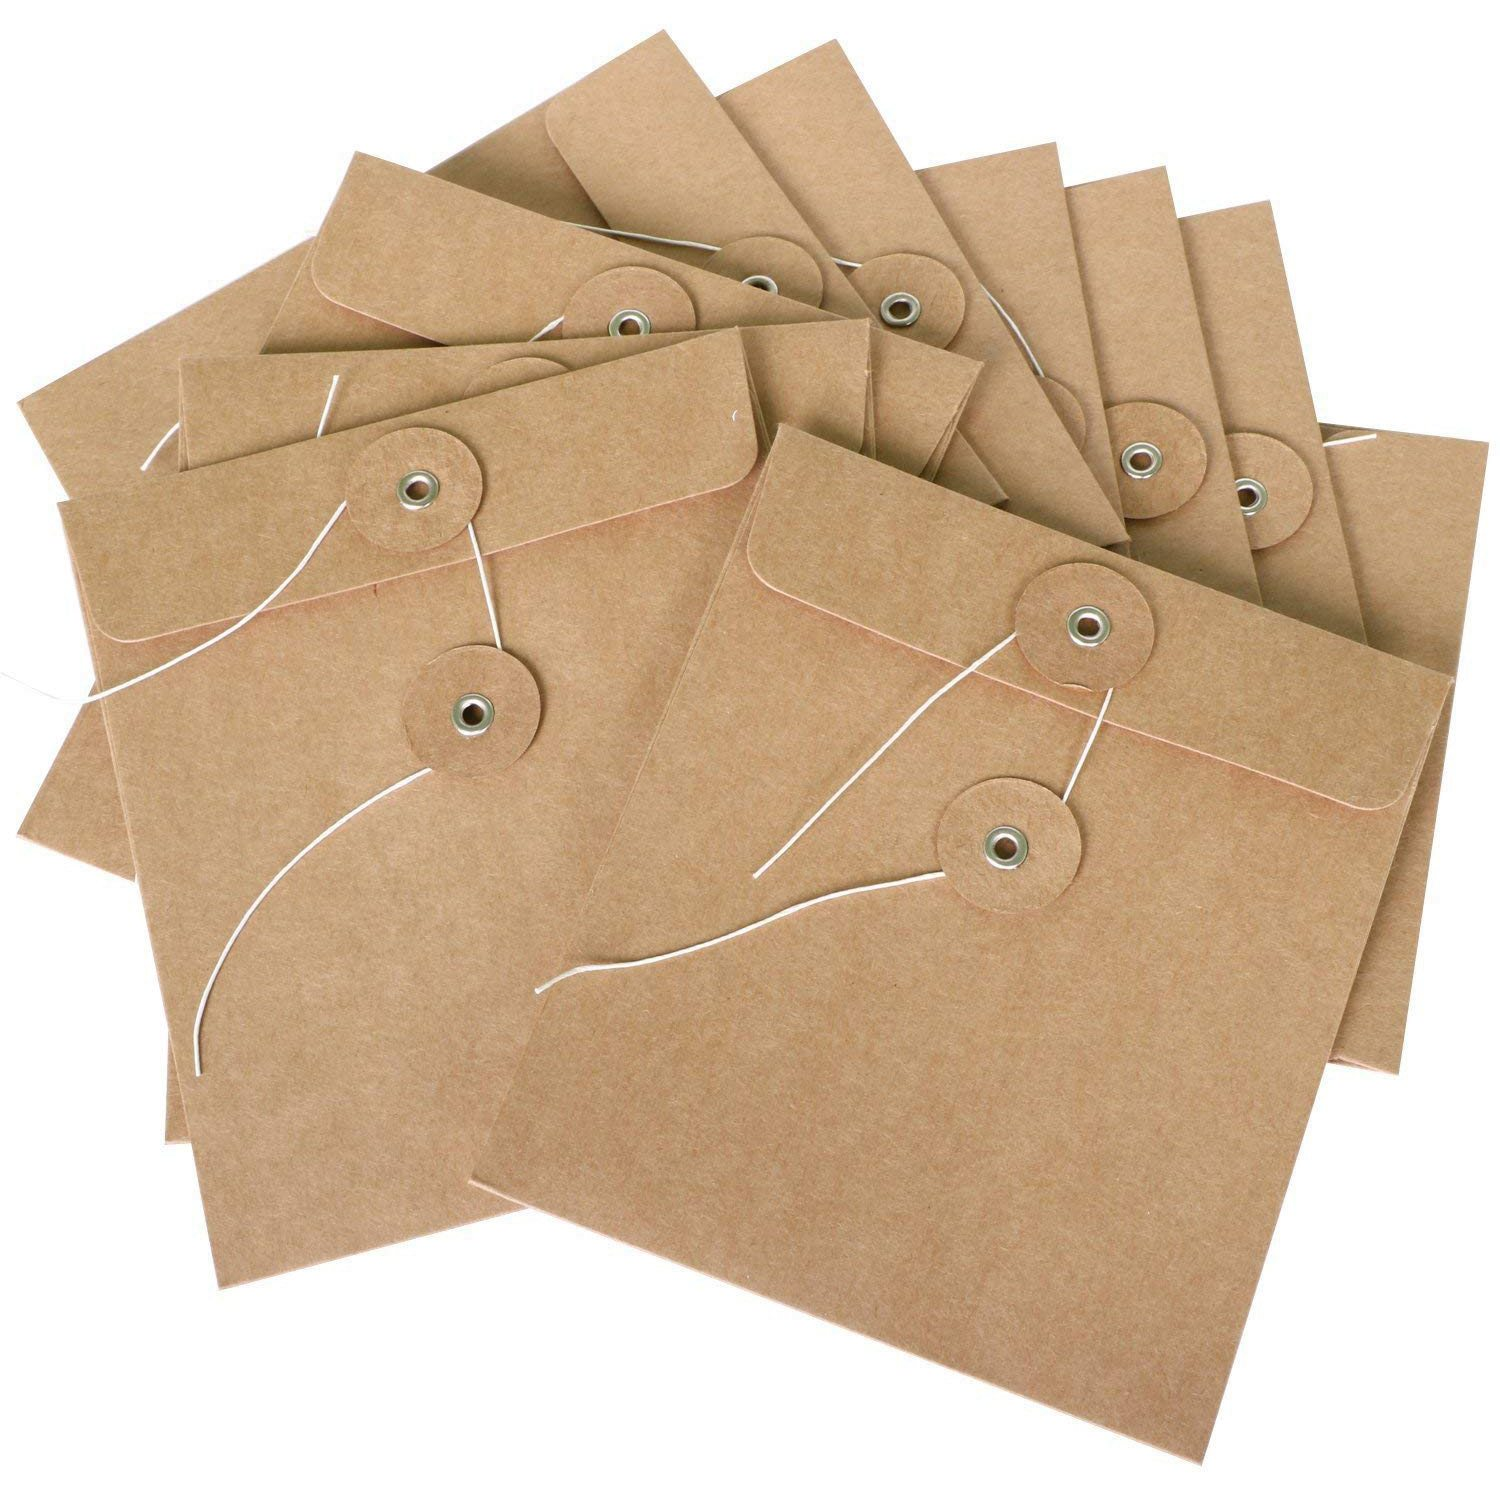 10 Pack Carton Envelopes Made From Brown Cardstock Also Available As Cd Case Bags